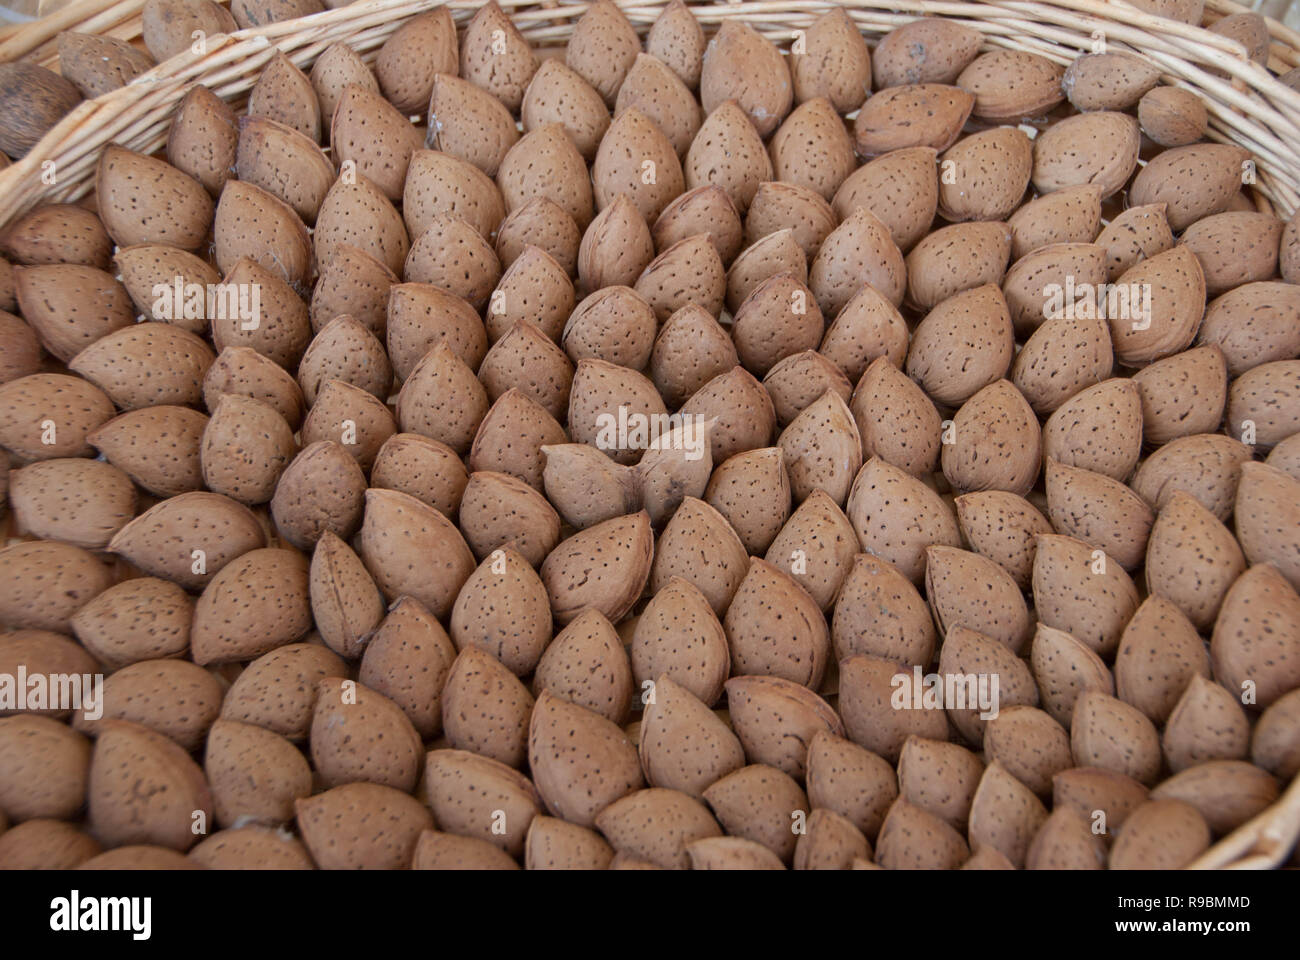 Toritto Almond, Slow Food Presidium, Puglia - Italy - Stock Image